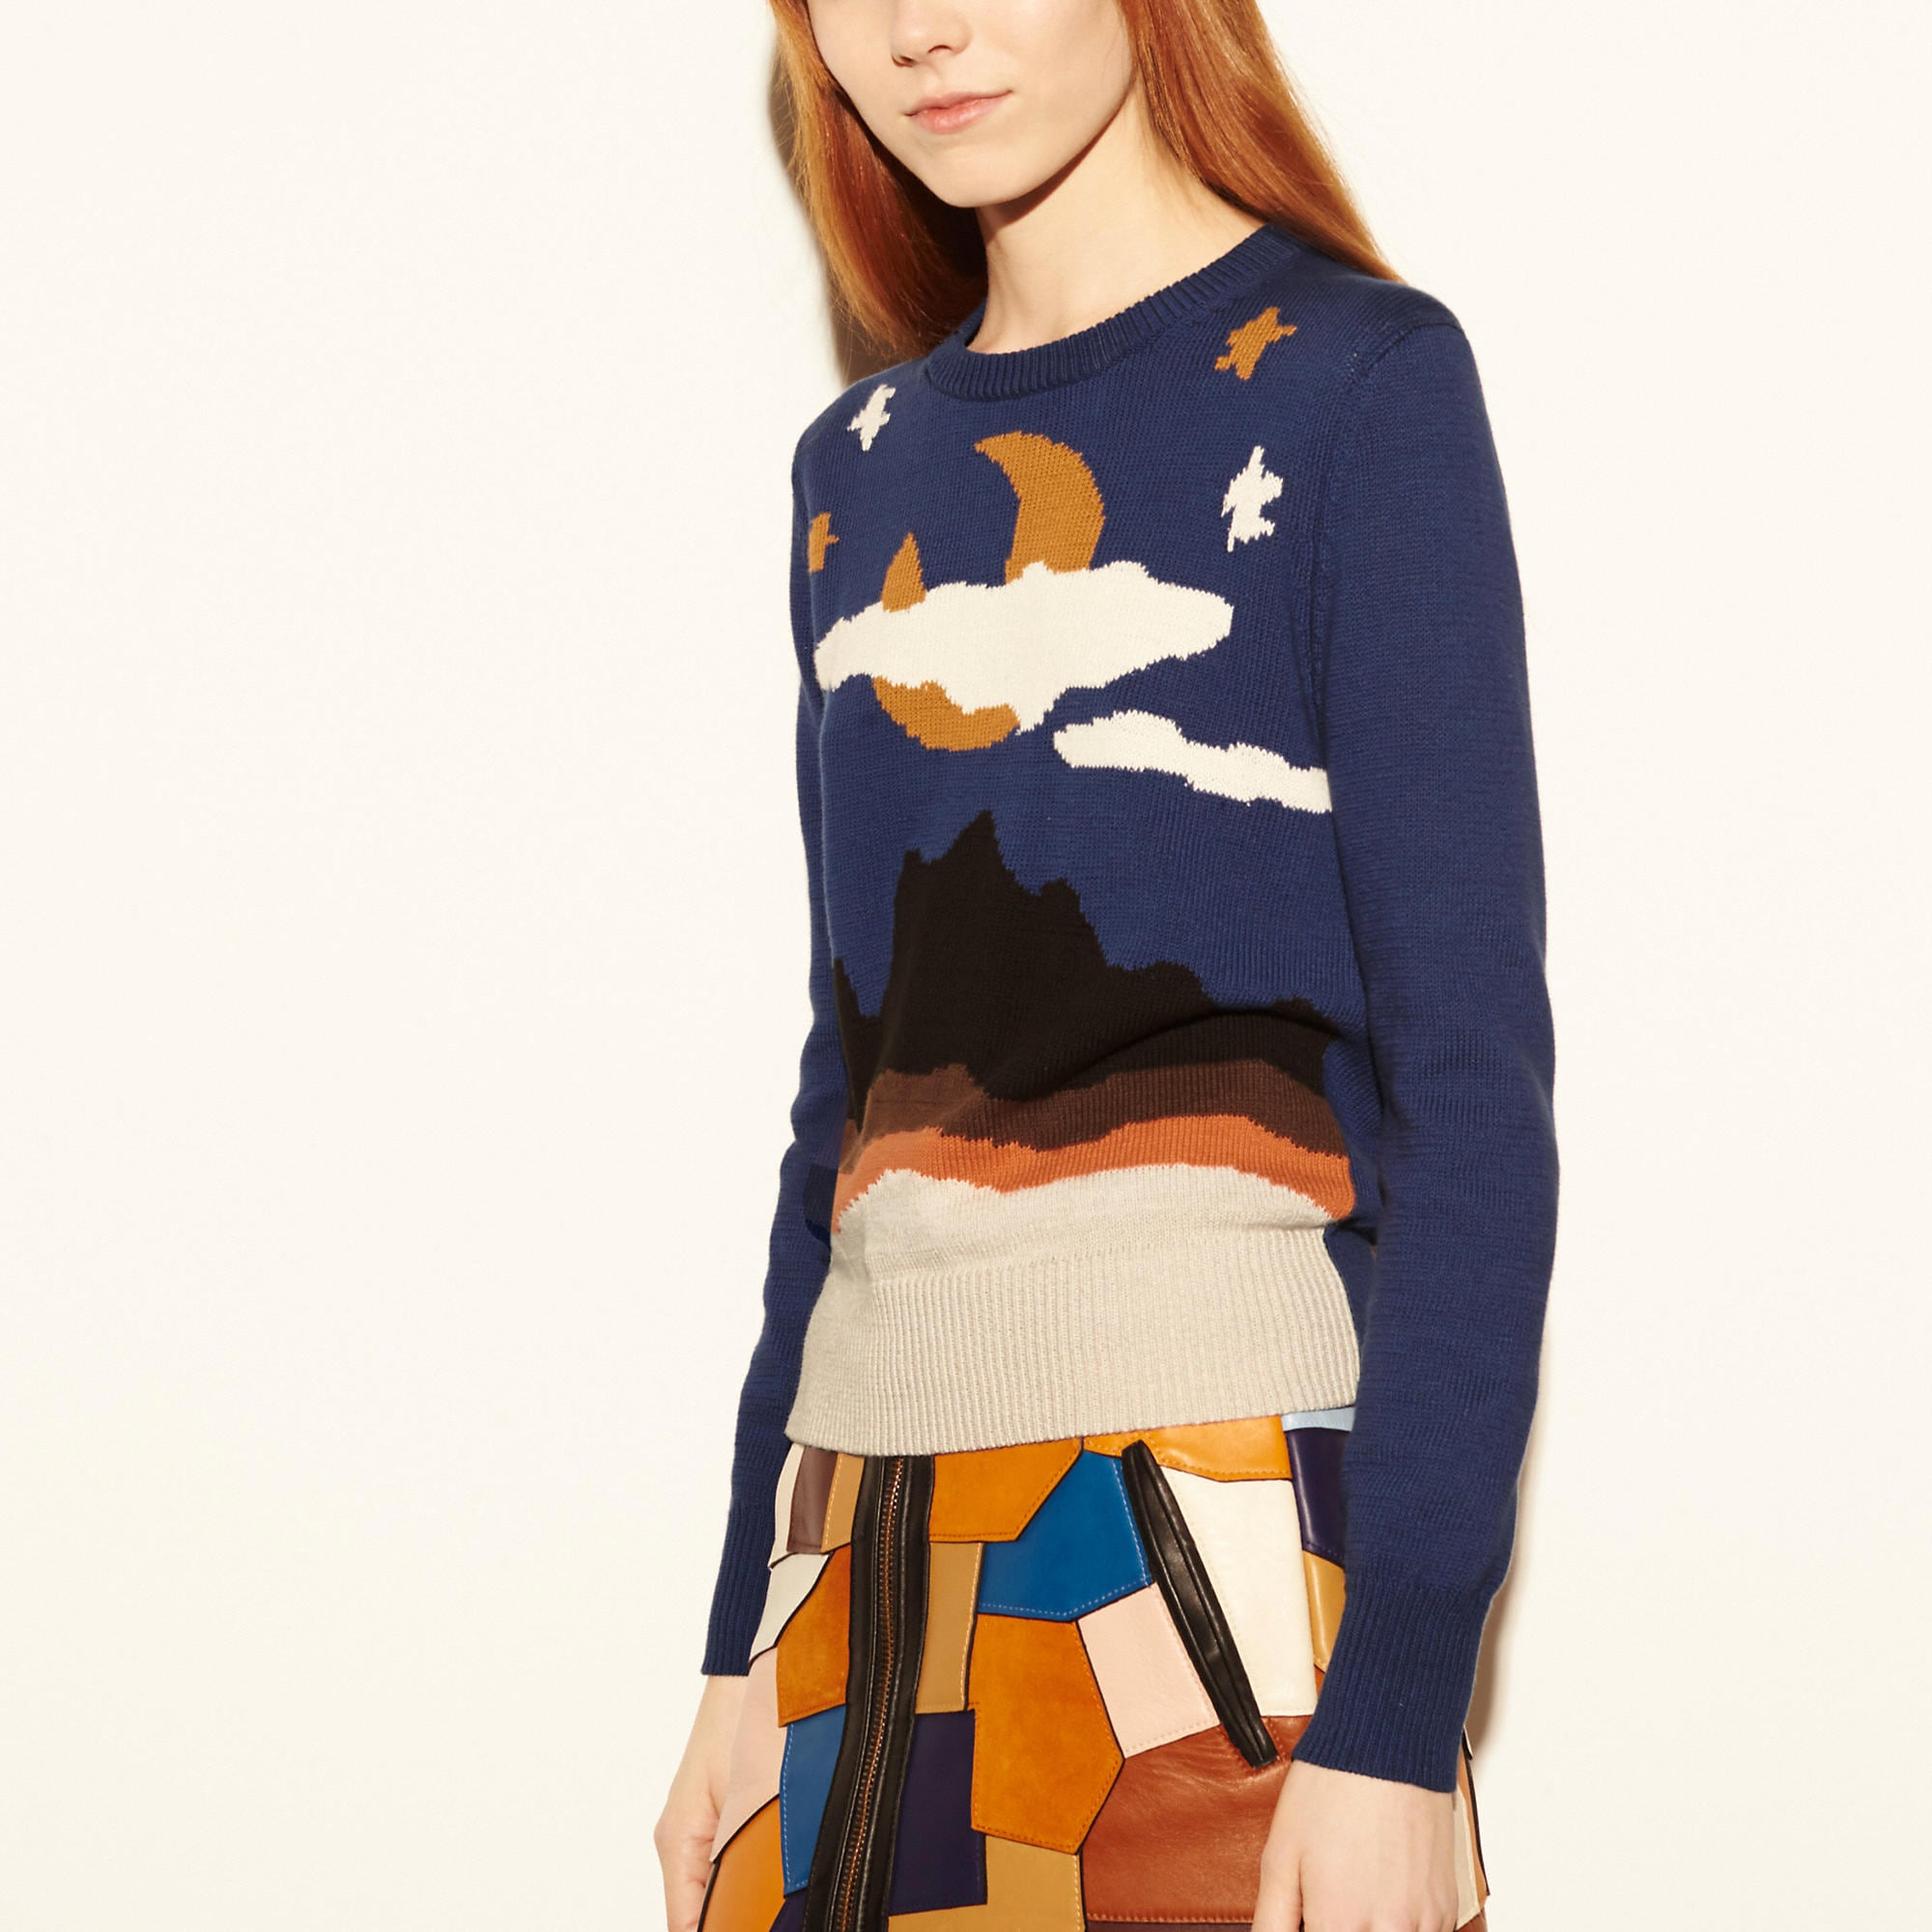 Coach 1941 Moonscape Crewneck Sweater